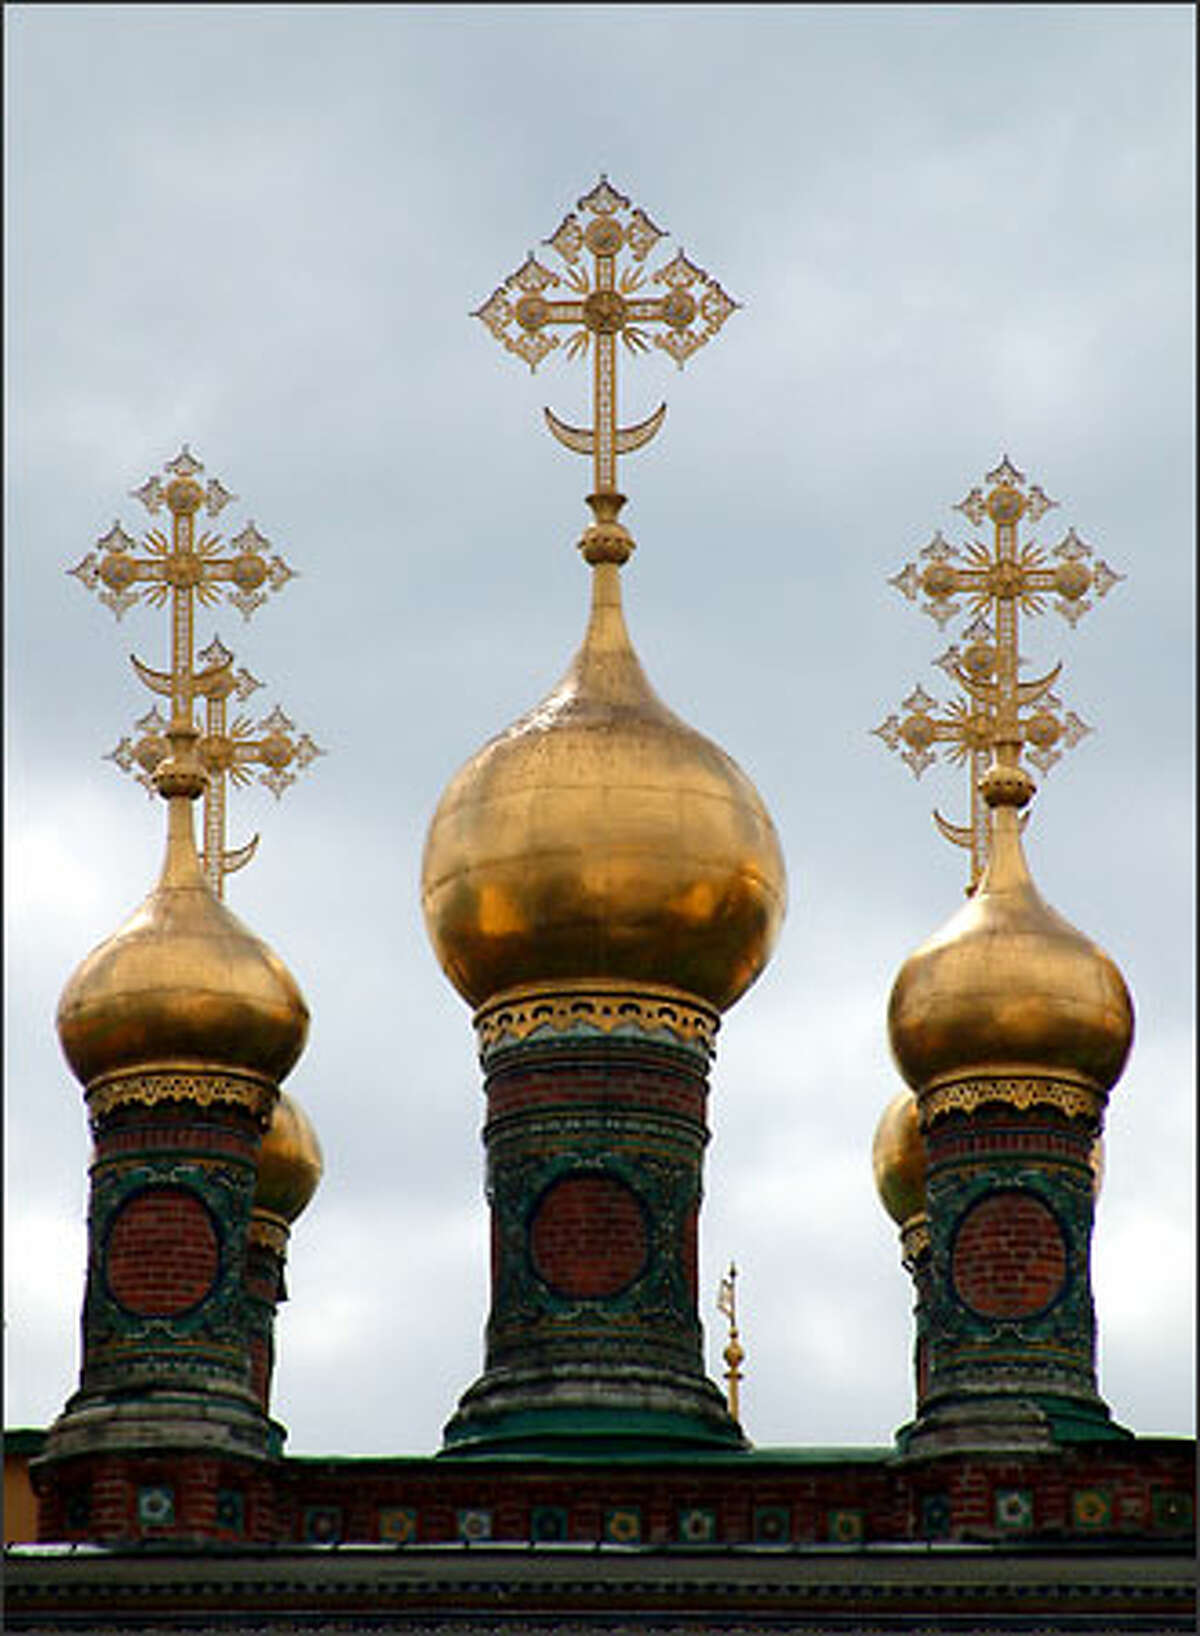 Just a few of the many domes found within the Kremlin walls.